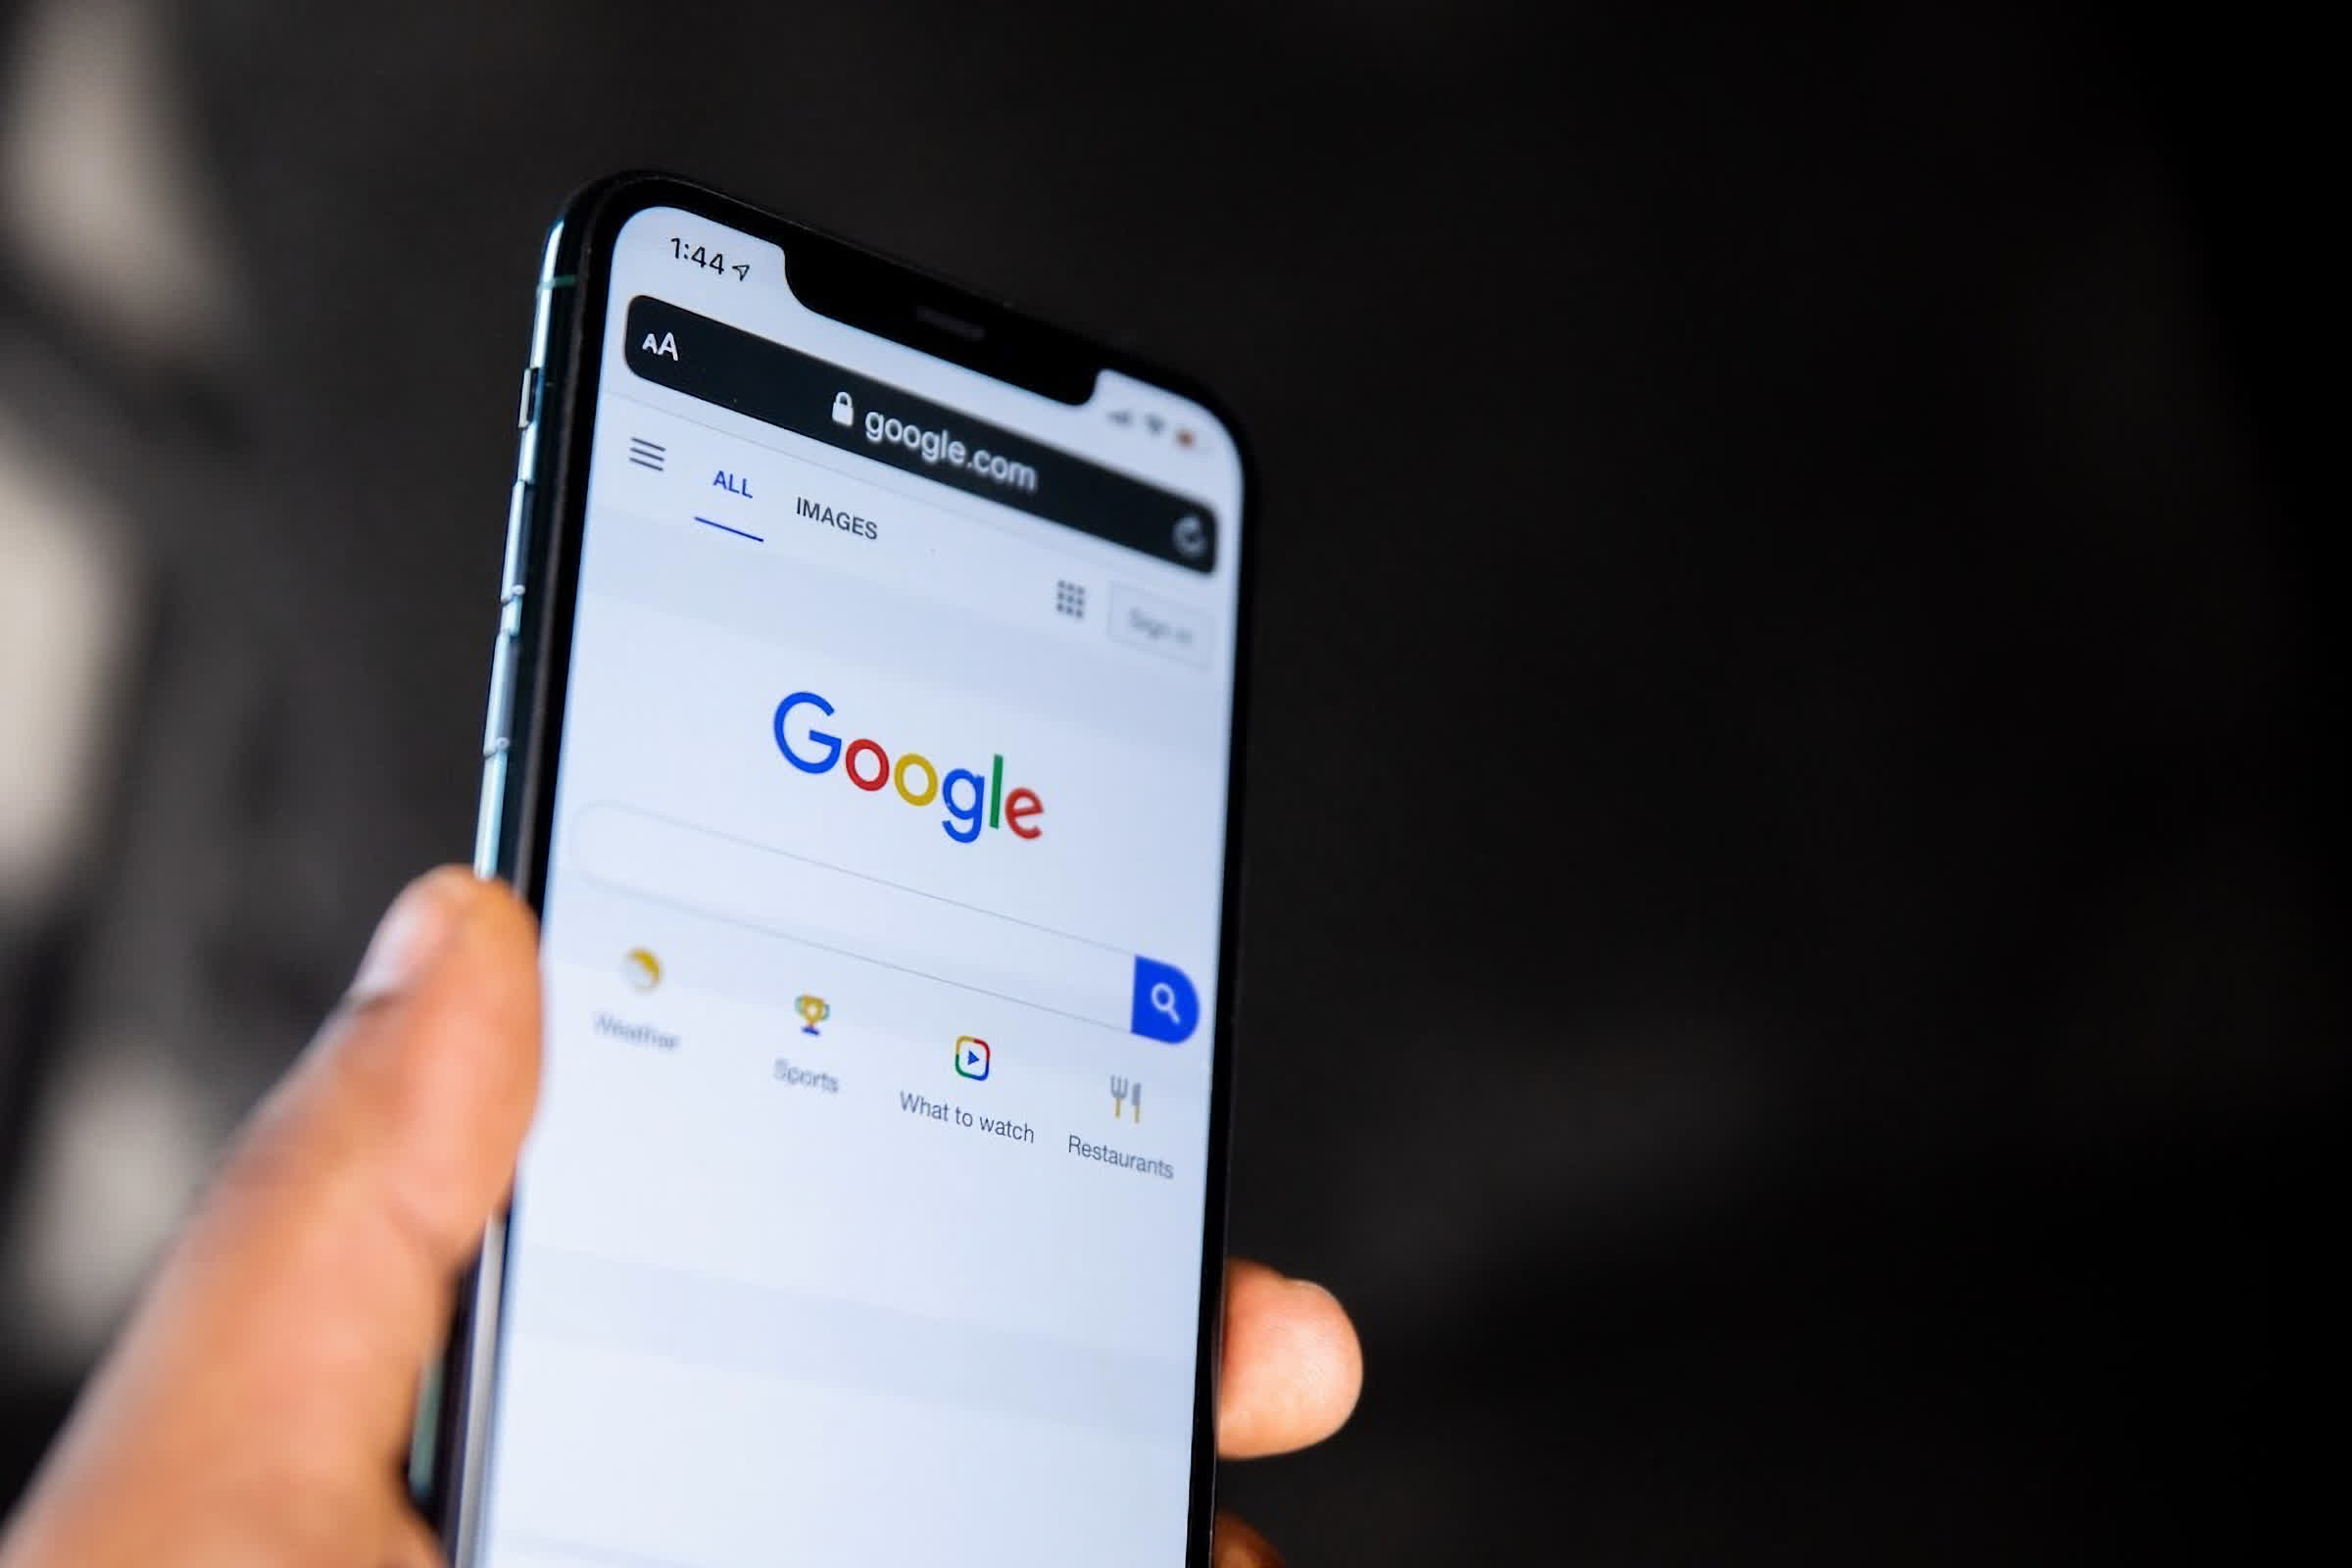 Google could pay Apple nearly $15 billion this year to remain the default search engine on iOS